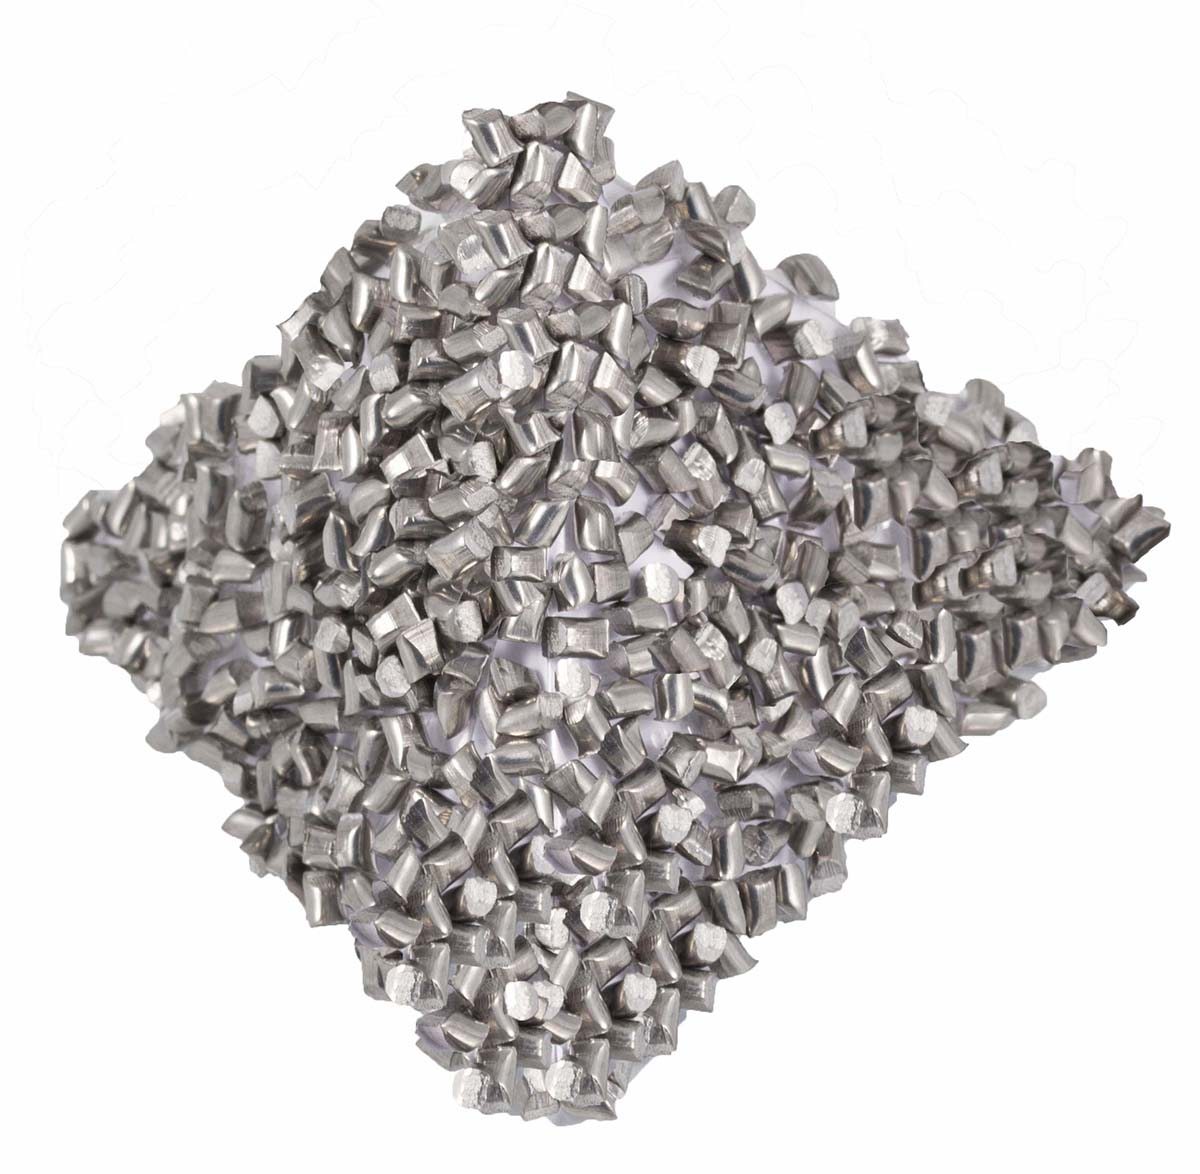 Leaded Solder Pellets